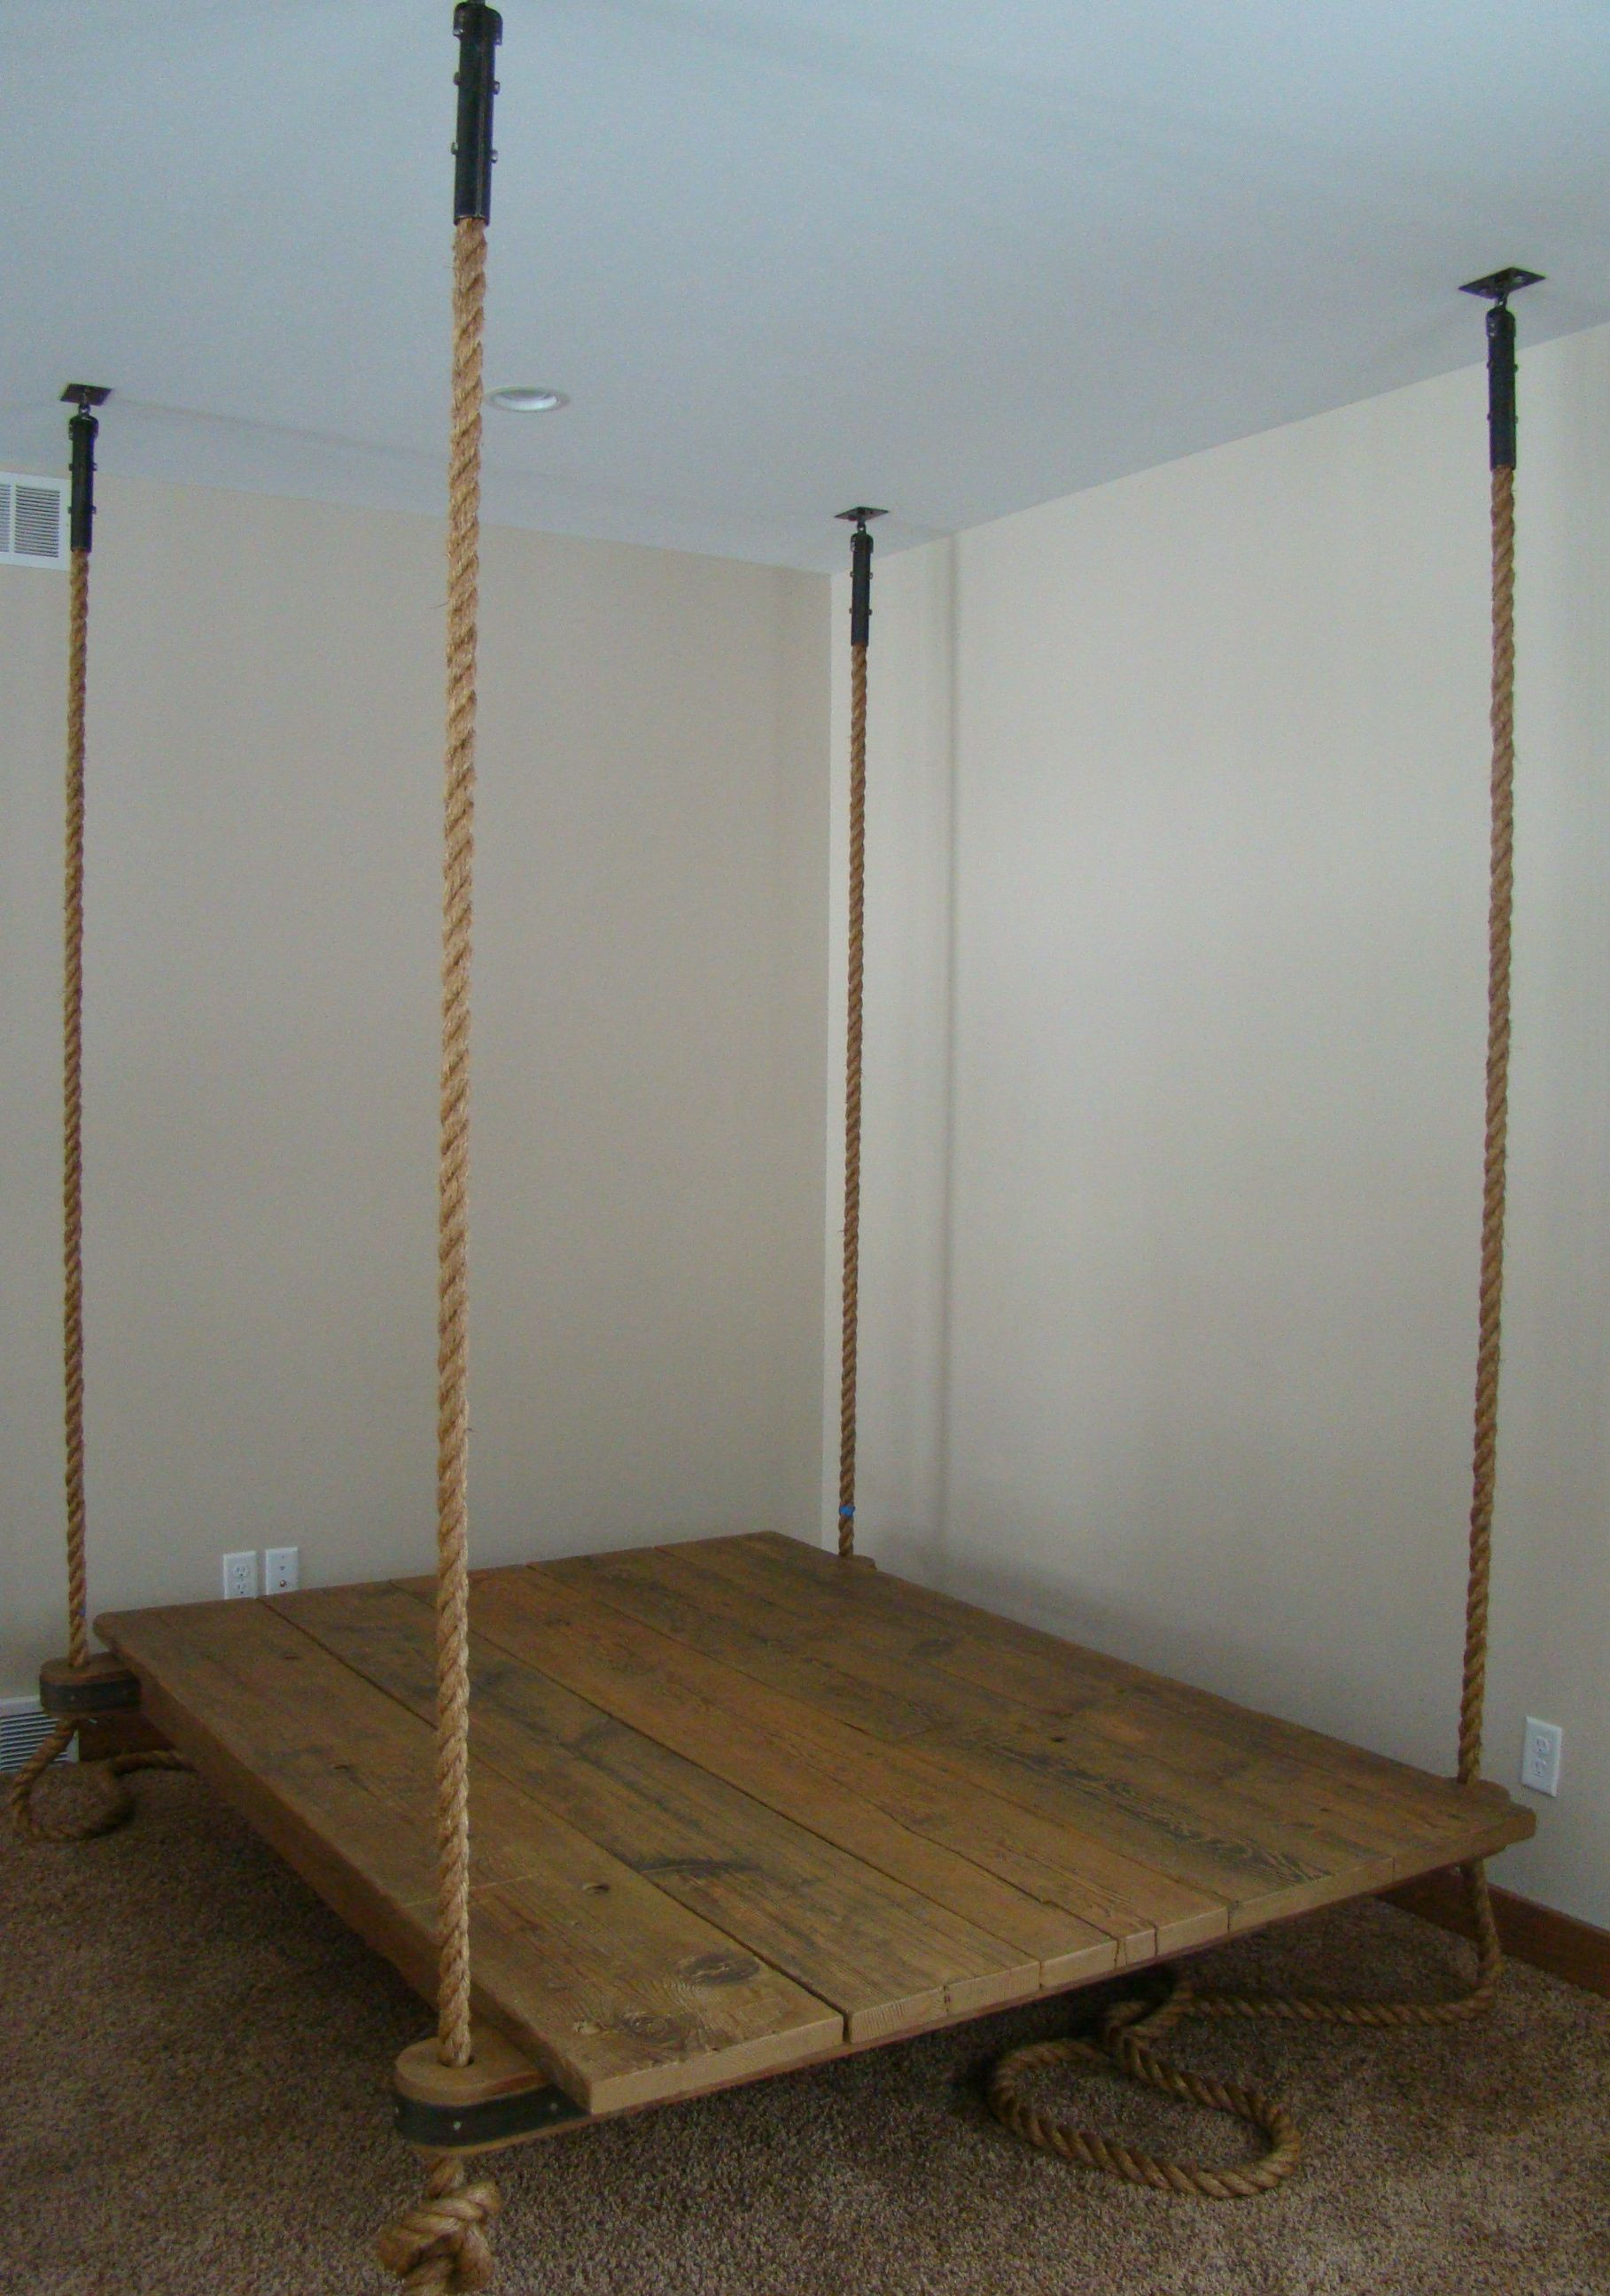 New Hanging Bed Preview Hanging Beds Wooden Bed